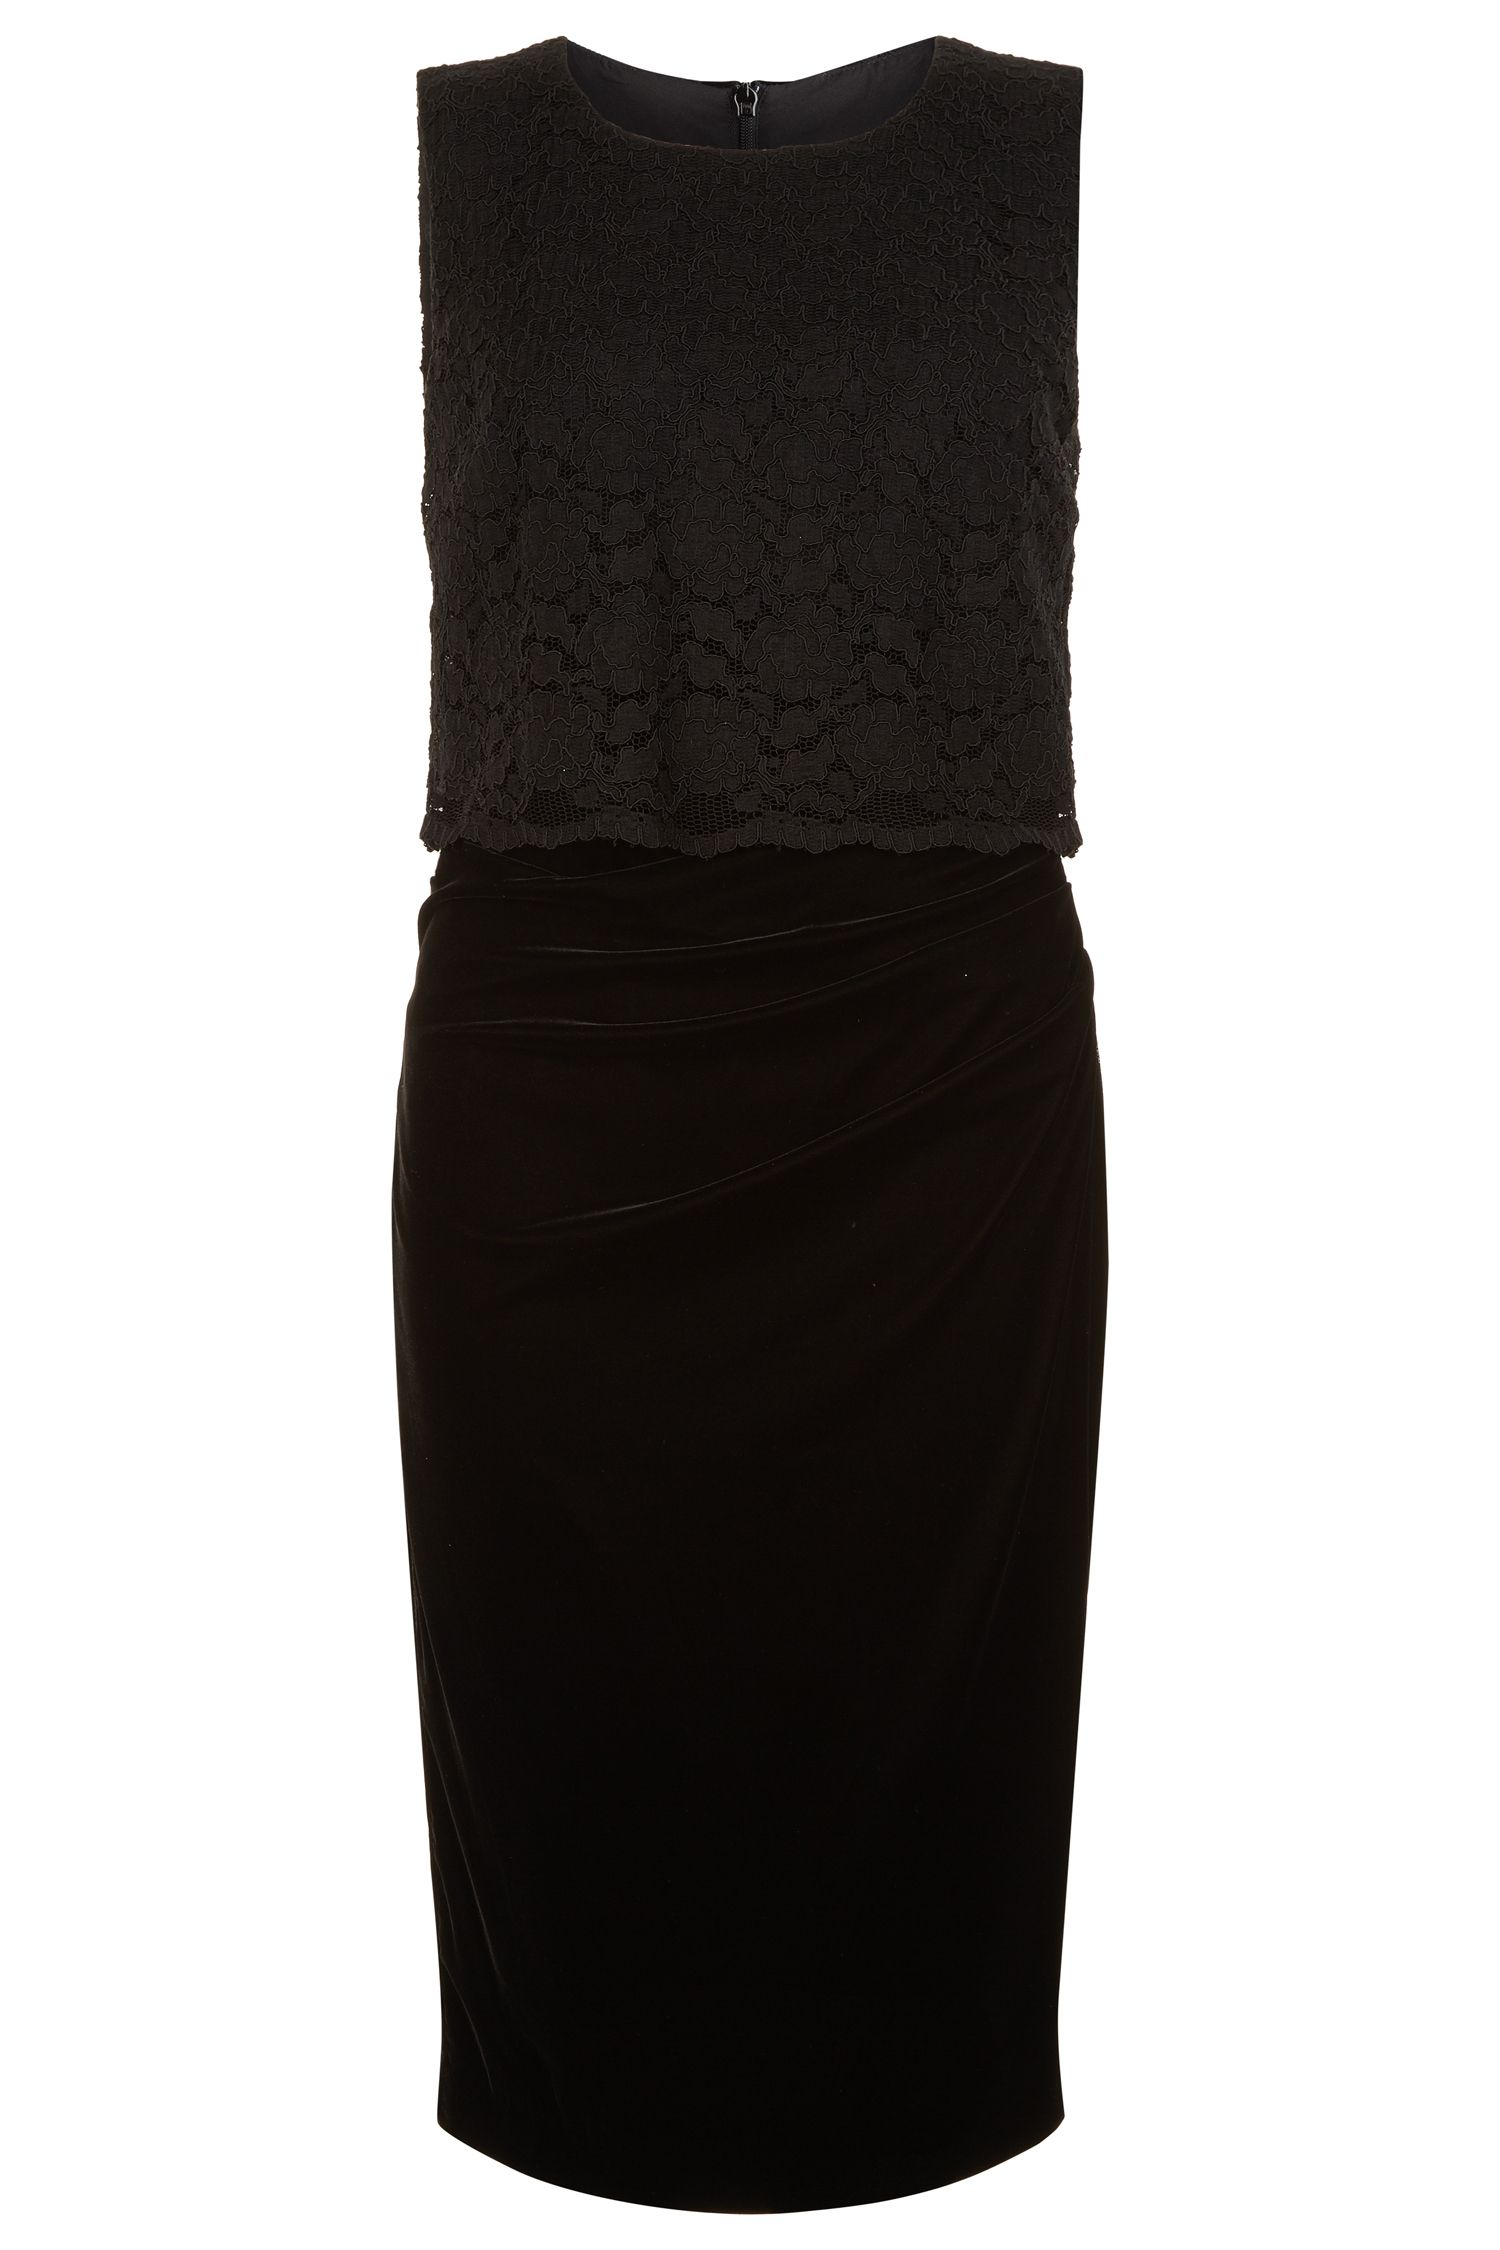 Damsel in a Dress Vesper Dress, Black